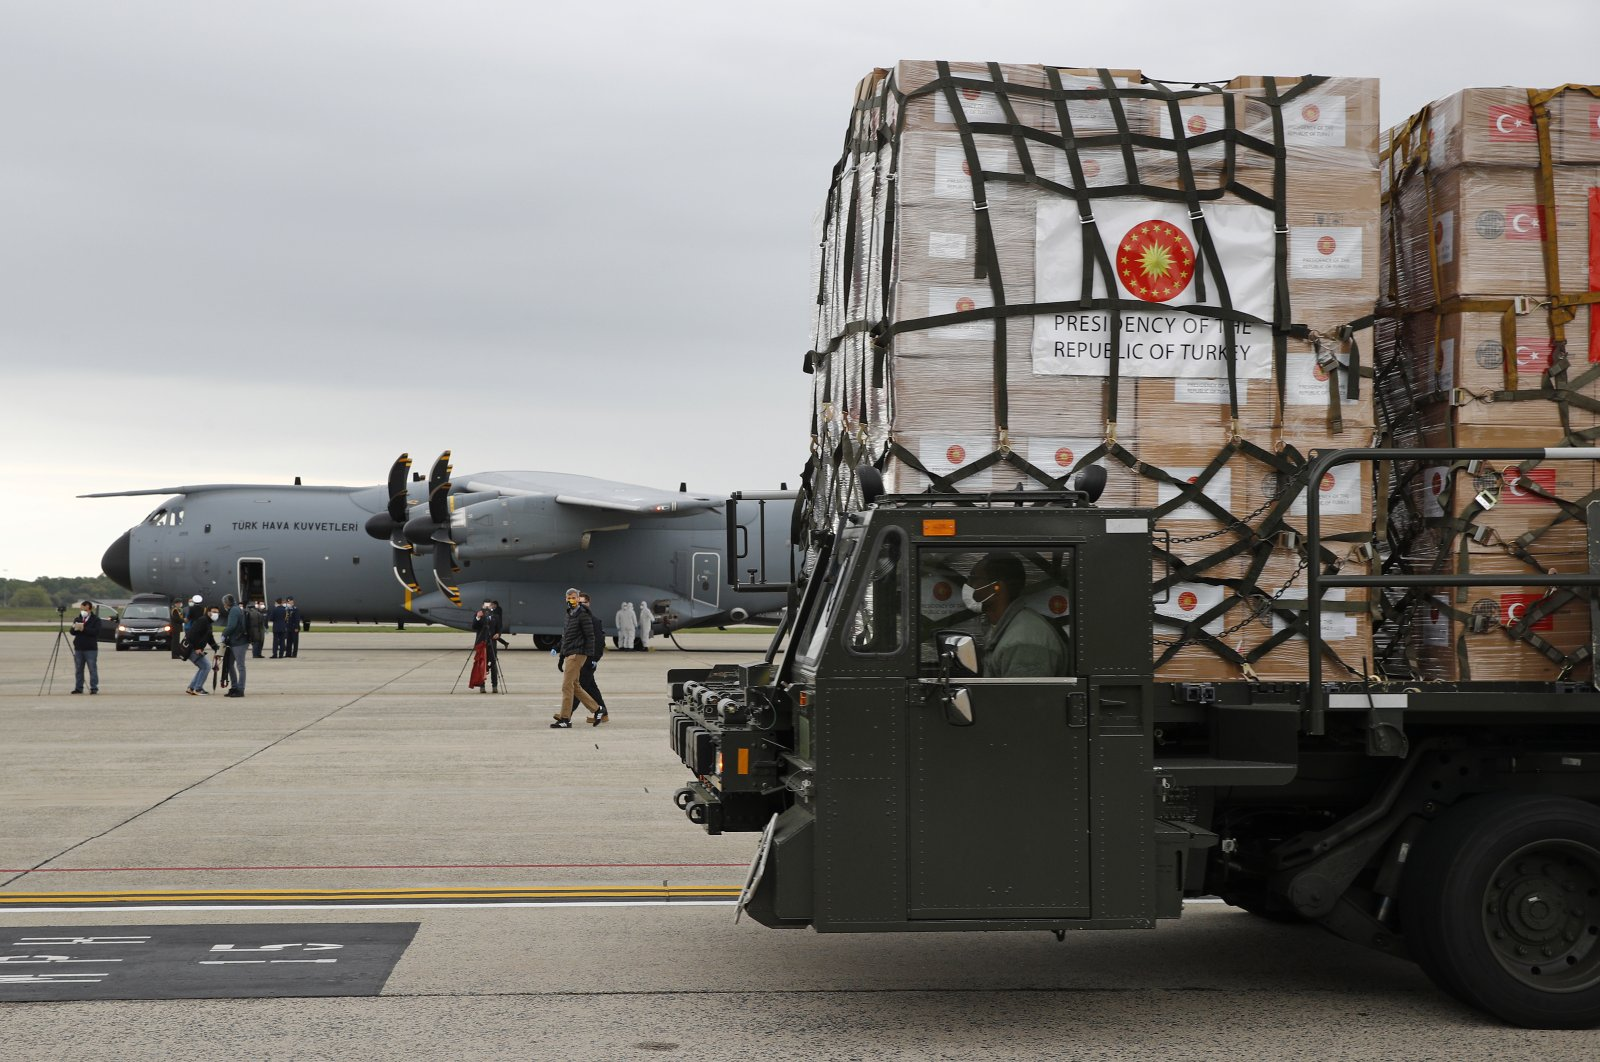 A U.S. Air Force vehicle carries a donation of medical supplies from Turkey after it was unloaded from a military plane, at Andrews Air Force Base, Maryland, April 28, 2020. (AP Photo)